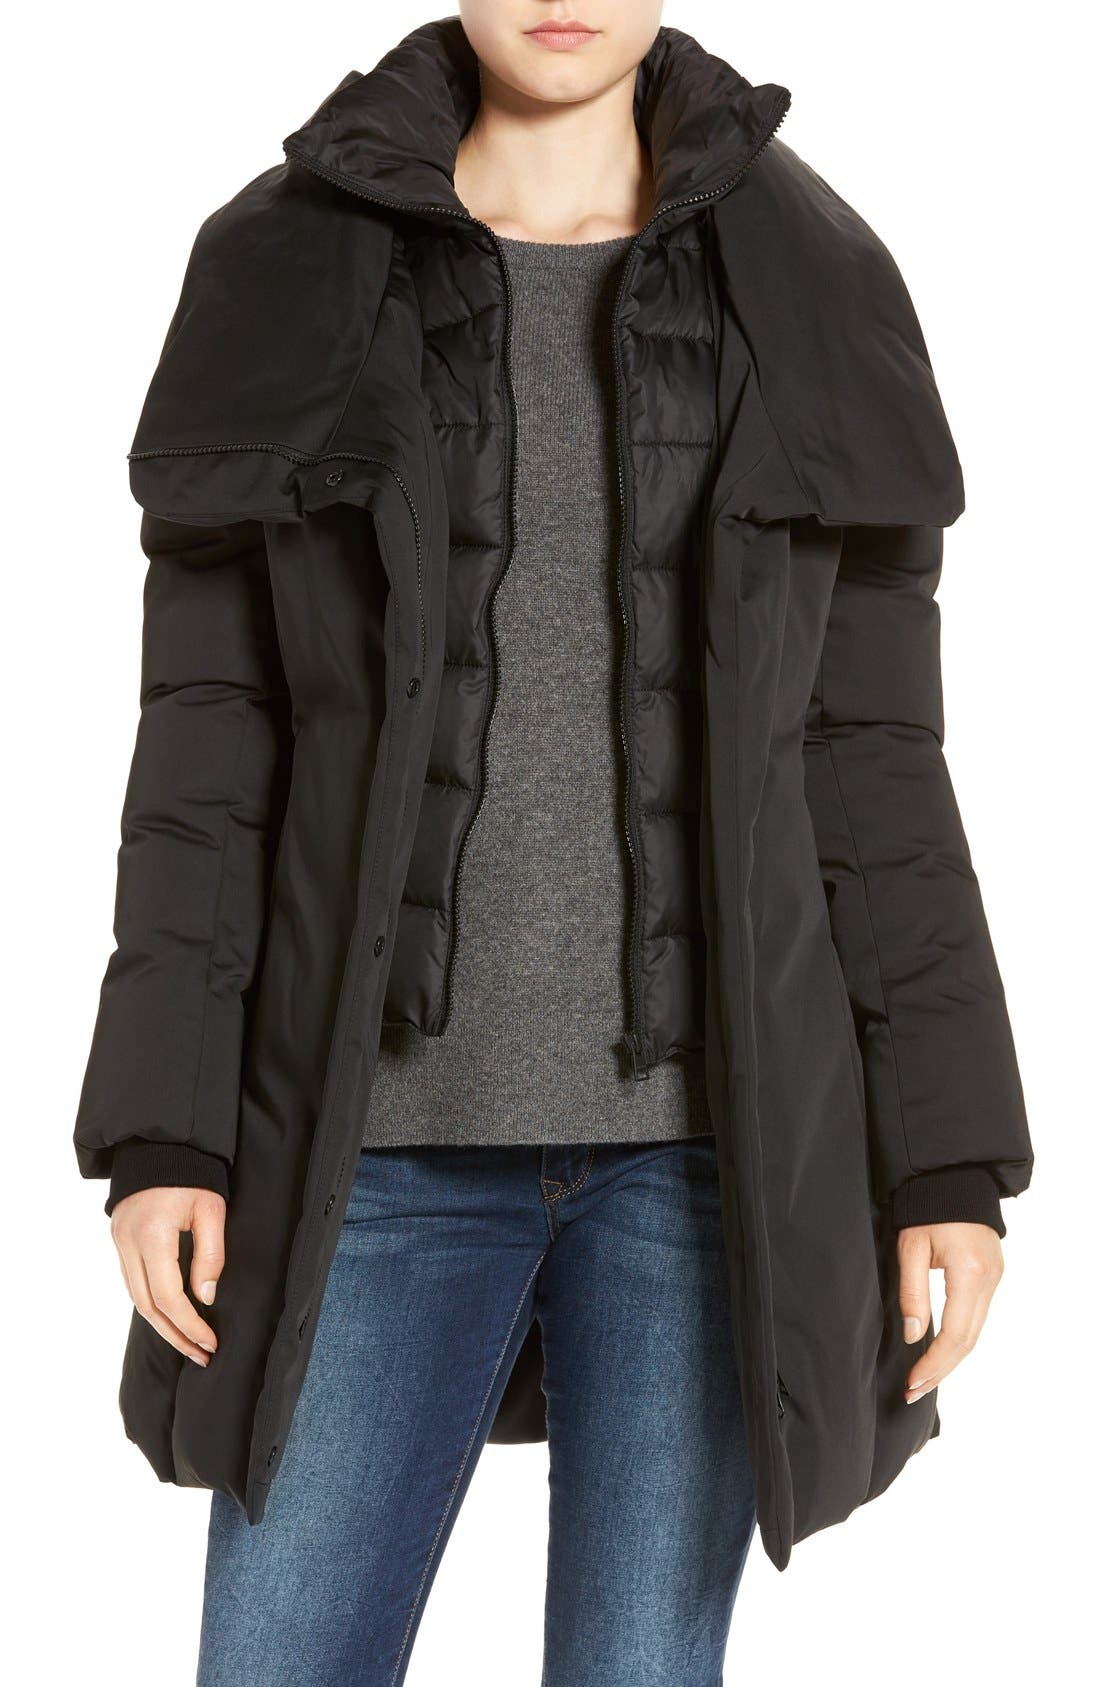 Main Image - Soia & Kyo Water Resistant Hooded Down Walking Coat